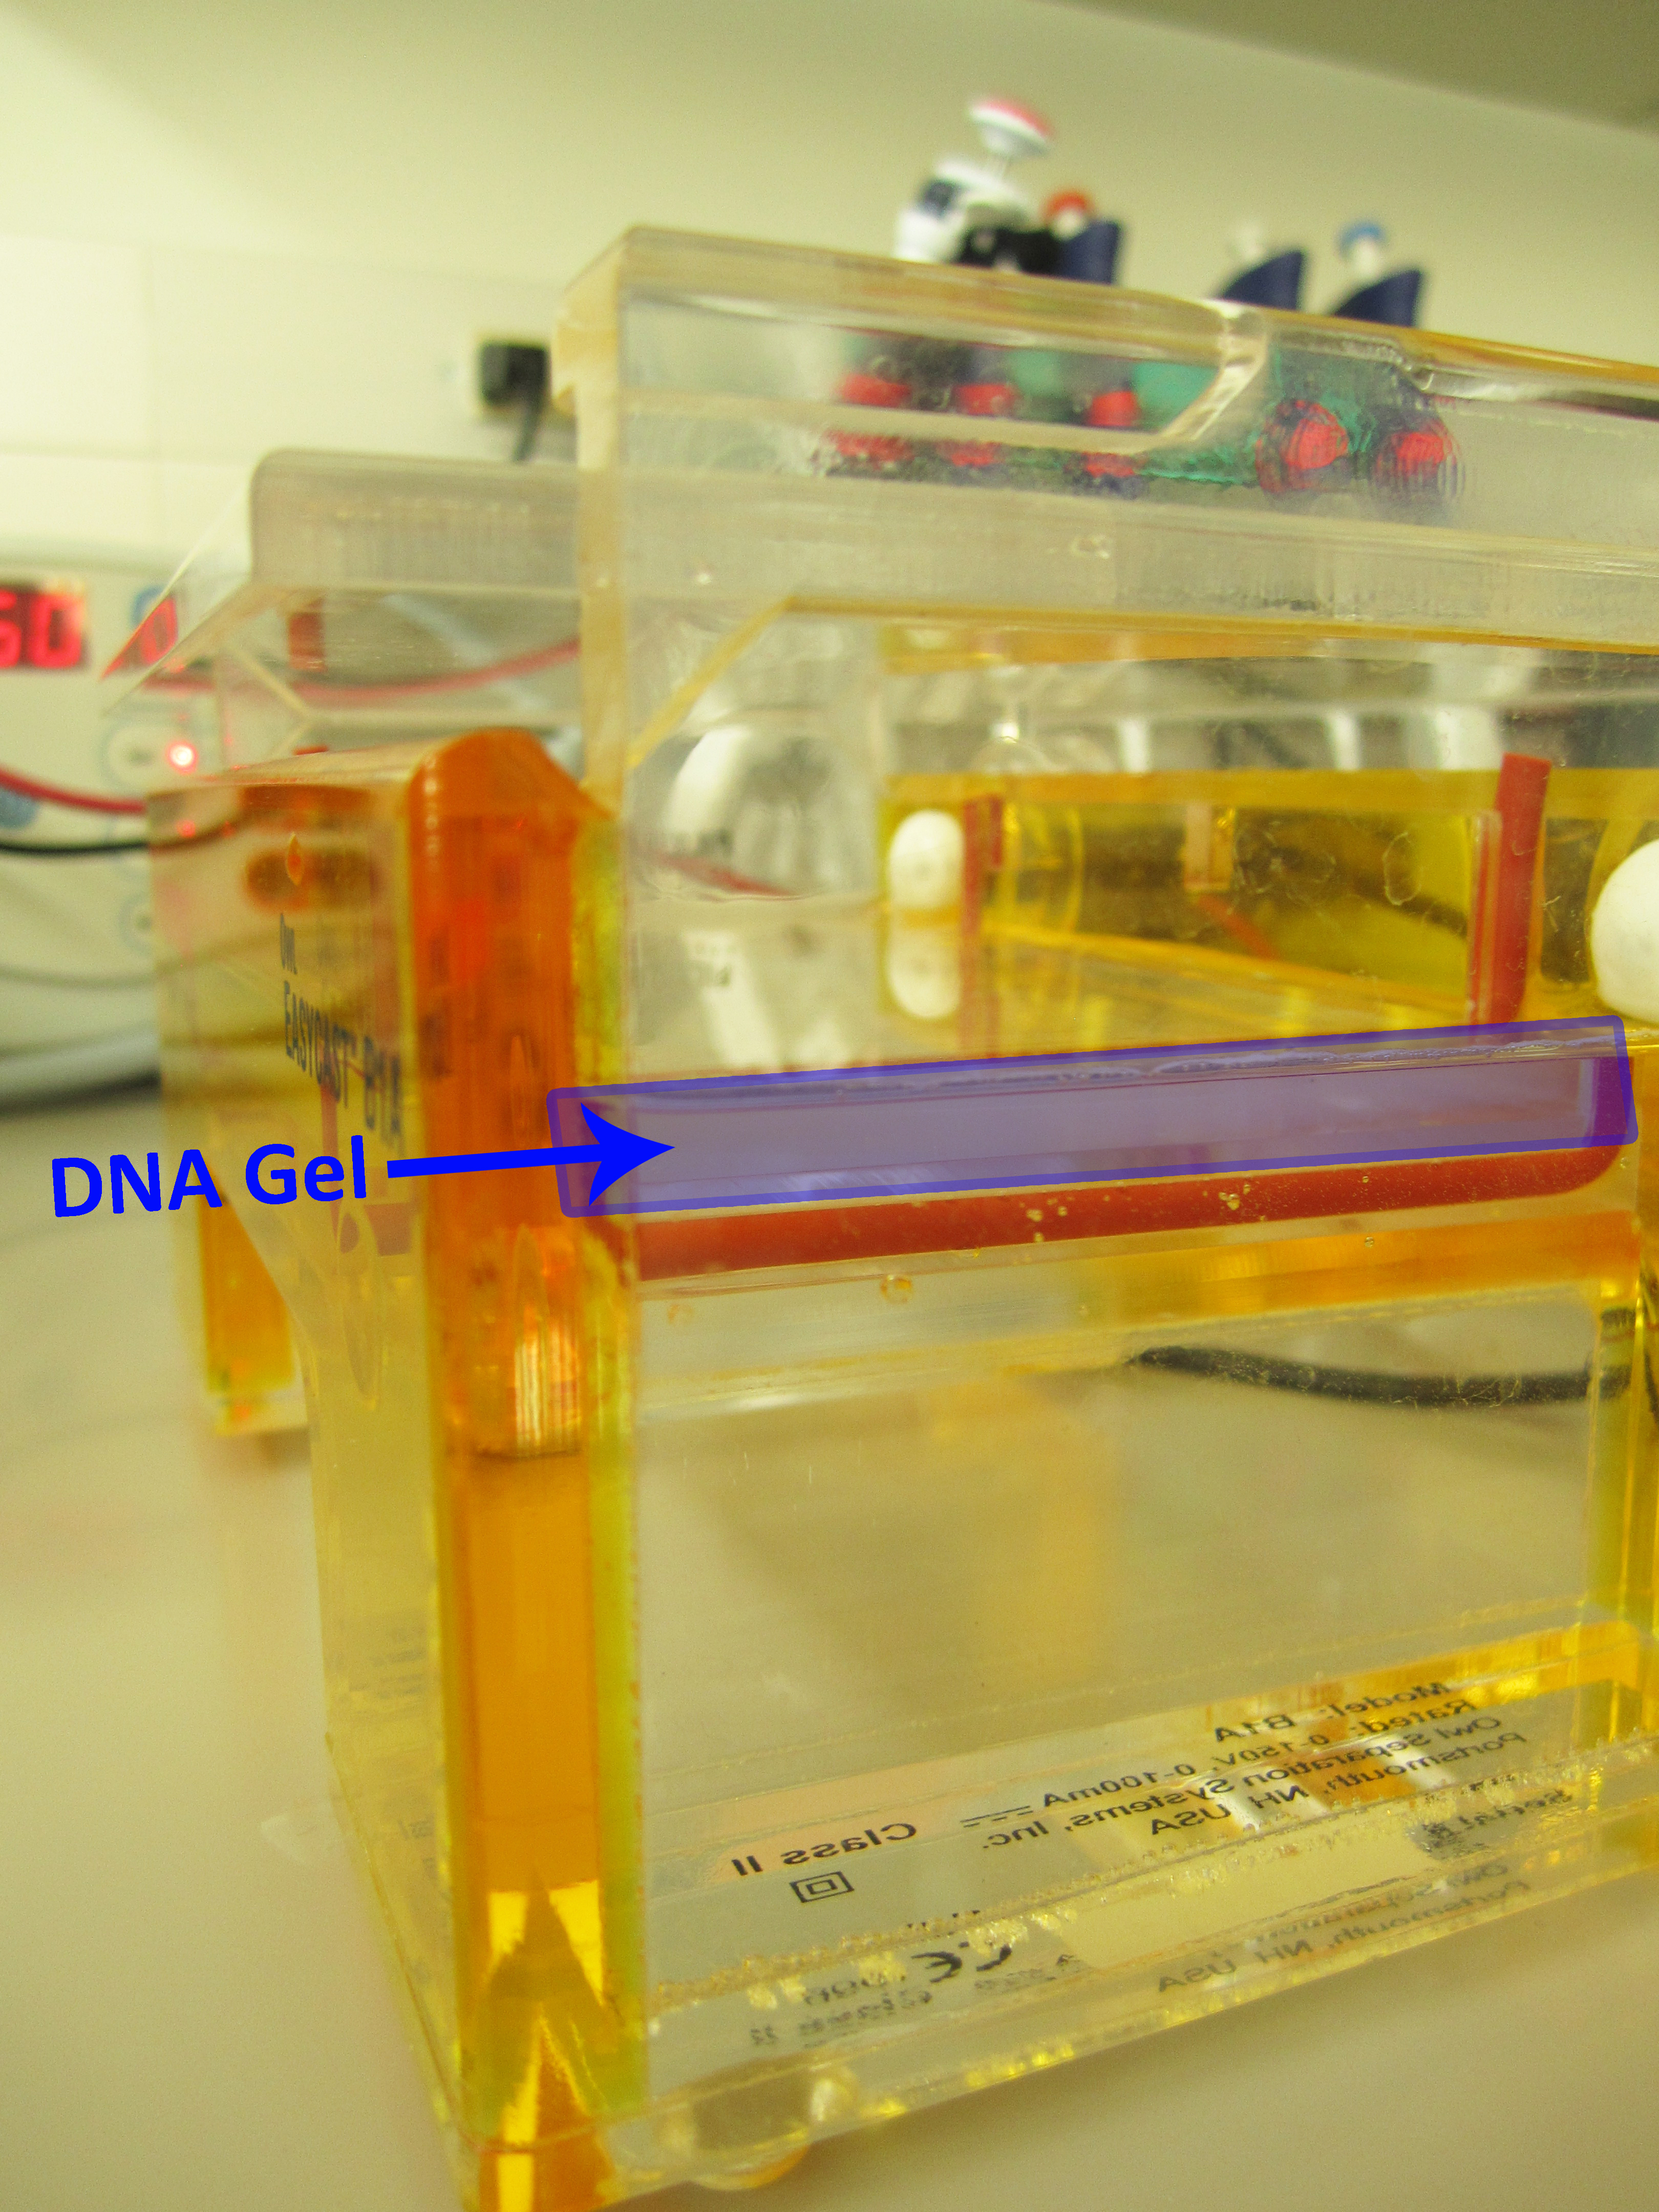 Agarose is used to make gels for DNA analysis